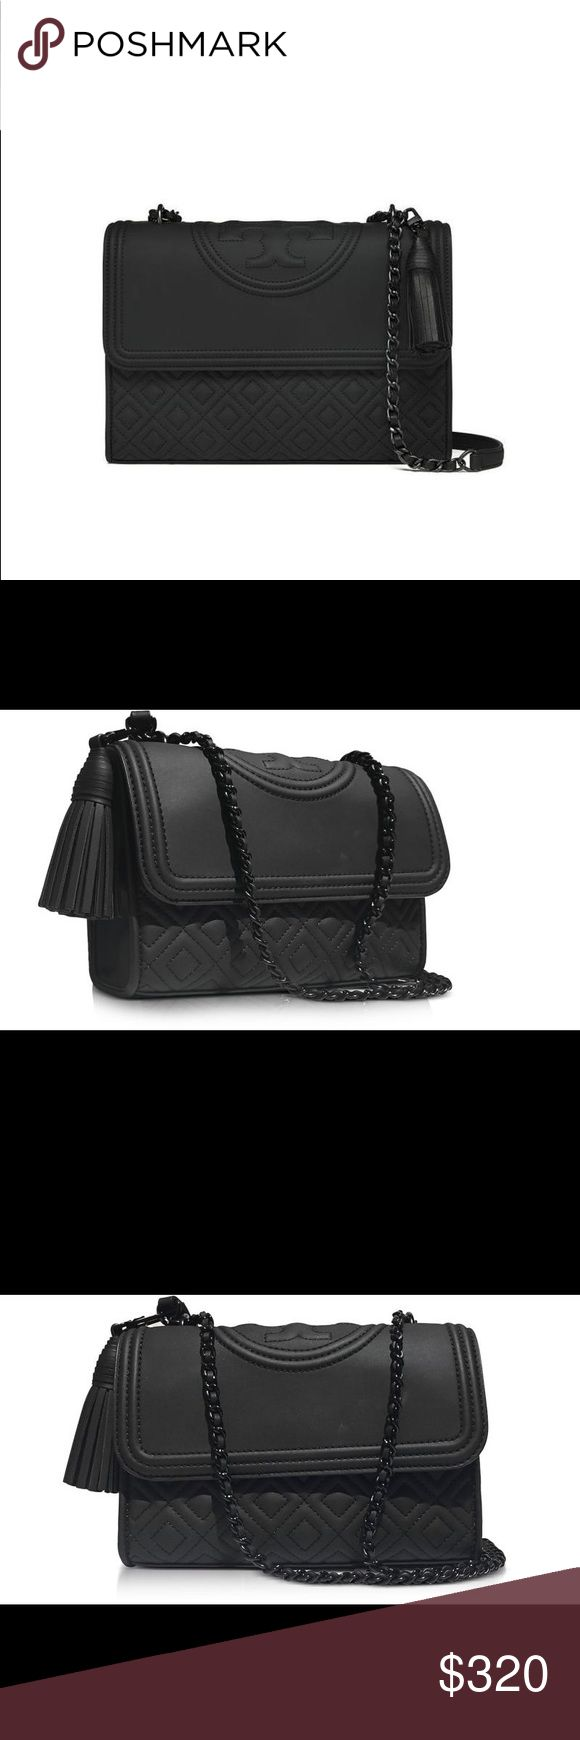 Tory Burch | Fleming Black Matte Convertible Bag Fleming Black Matte Small Convertible Shoulder Bag, has a sleek look and makes for the perfect addition to your sultry evening attire. Flap with magnetic snap button closure, adjustable chain strap, embossed logo detail on flap, removable tassel, detail and black hardware.  Elegant and detailed with branding on the flap with a diamond matelassé finish at the body. Carry it cross-body or over shoulder. - 2 inside pockets, 1 pocket with zipper…